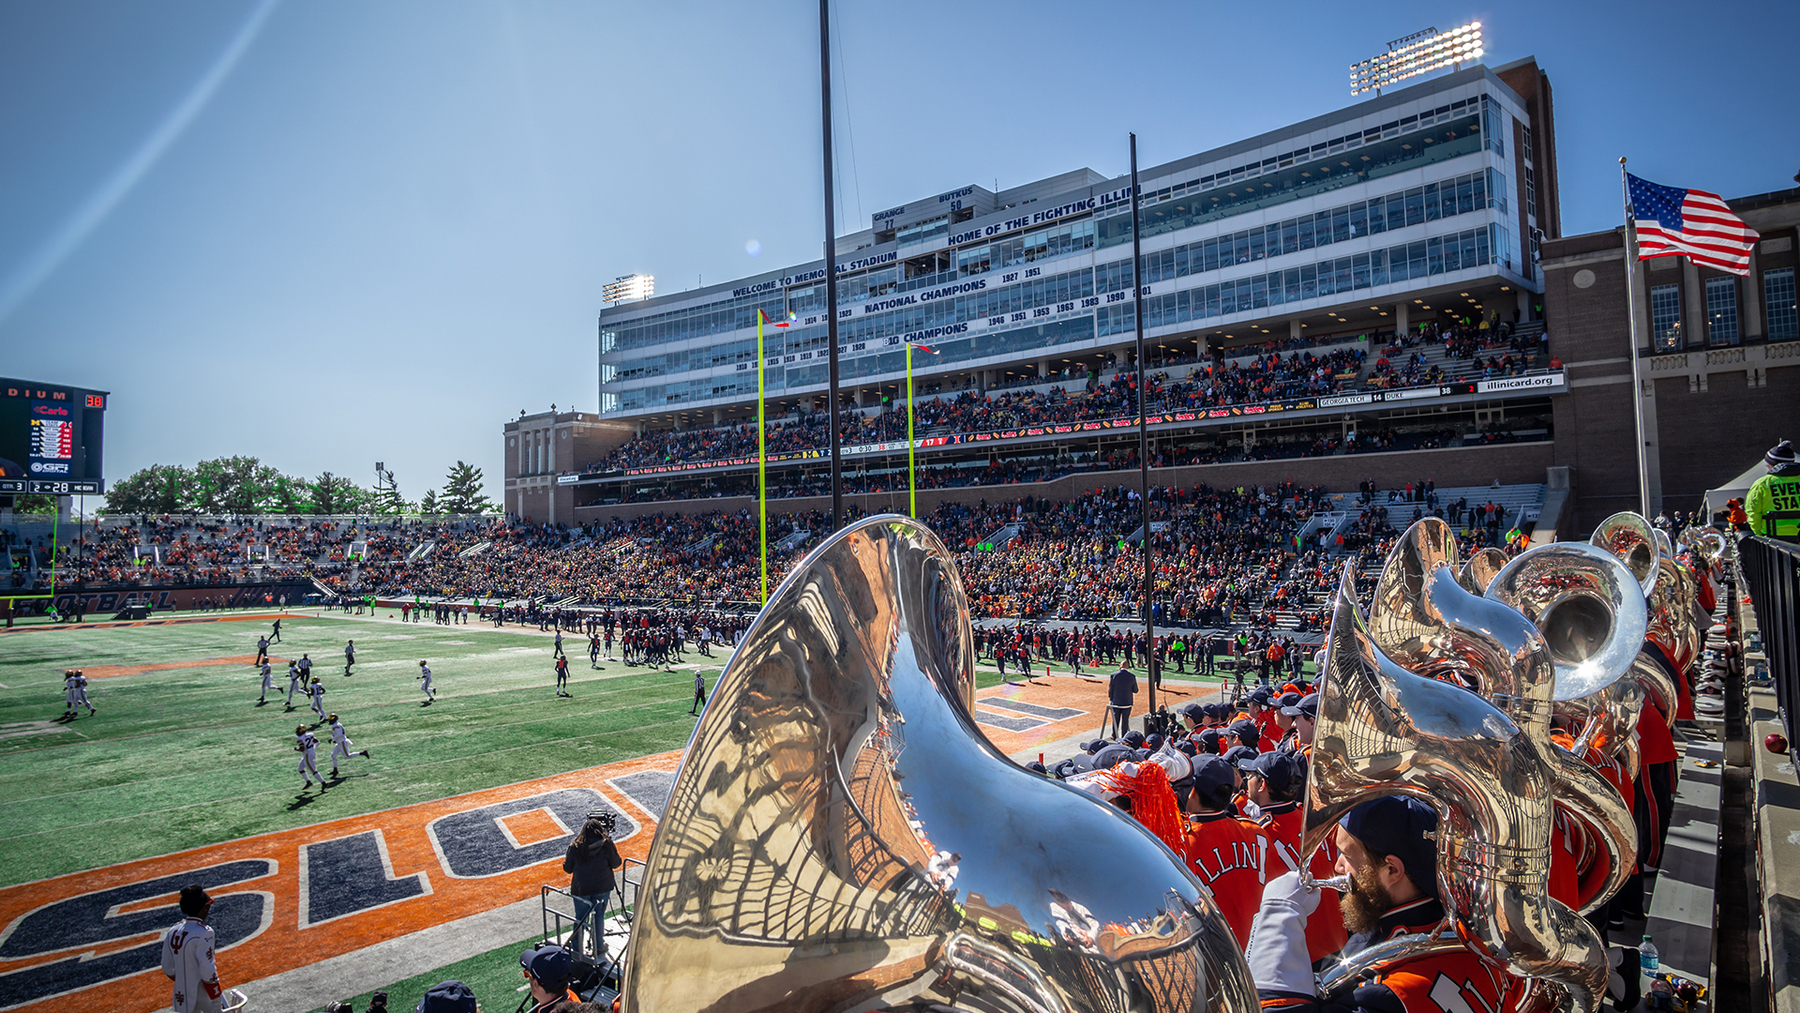 gameday scene at Memorial Stadium includes players on the field and Marching Illini Sousaphones in the stands